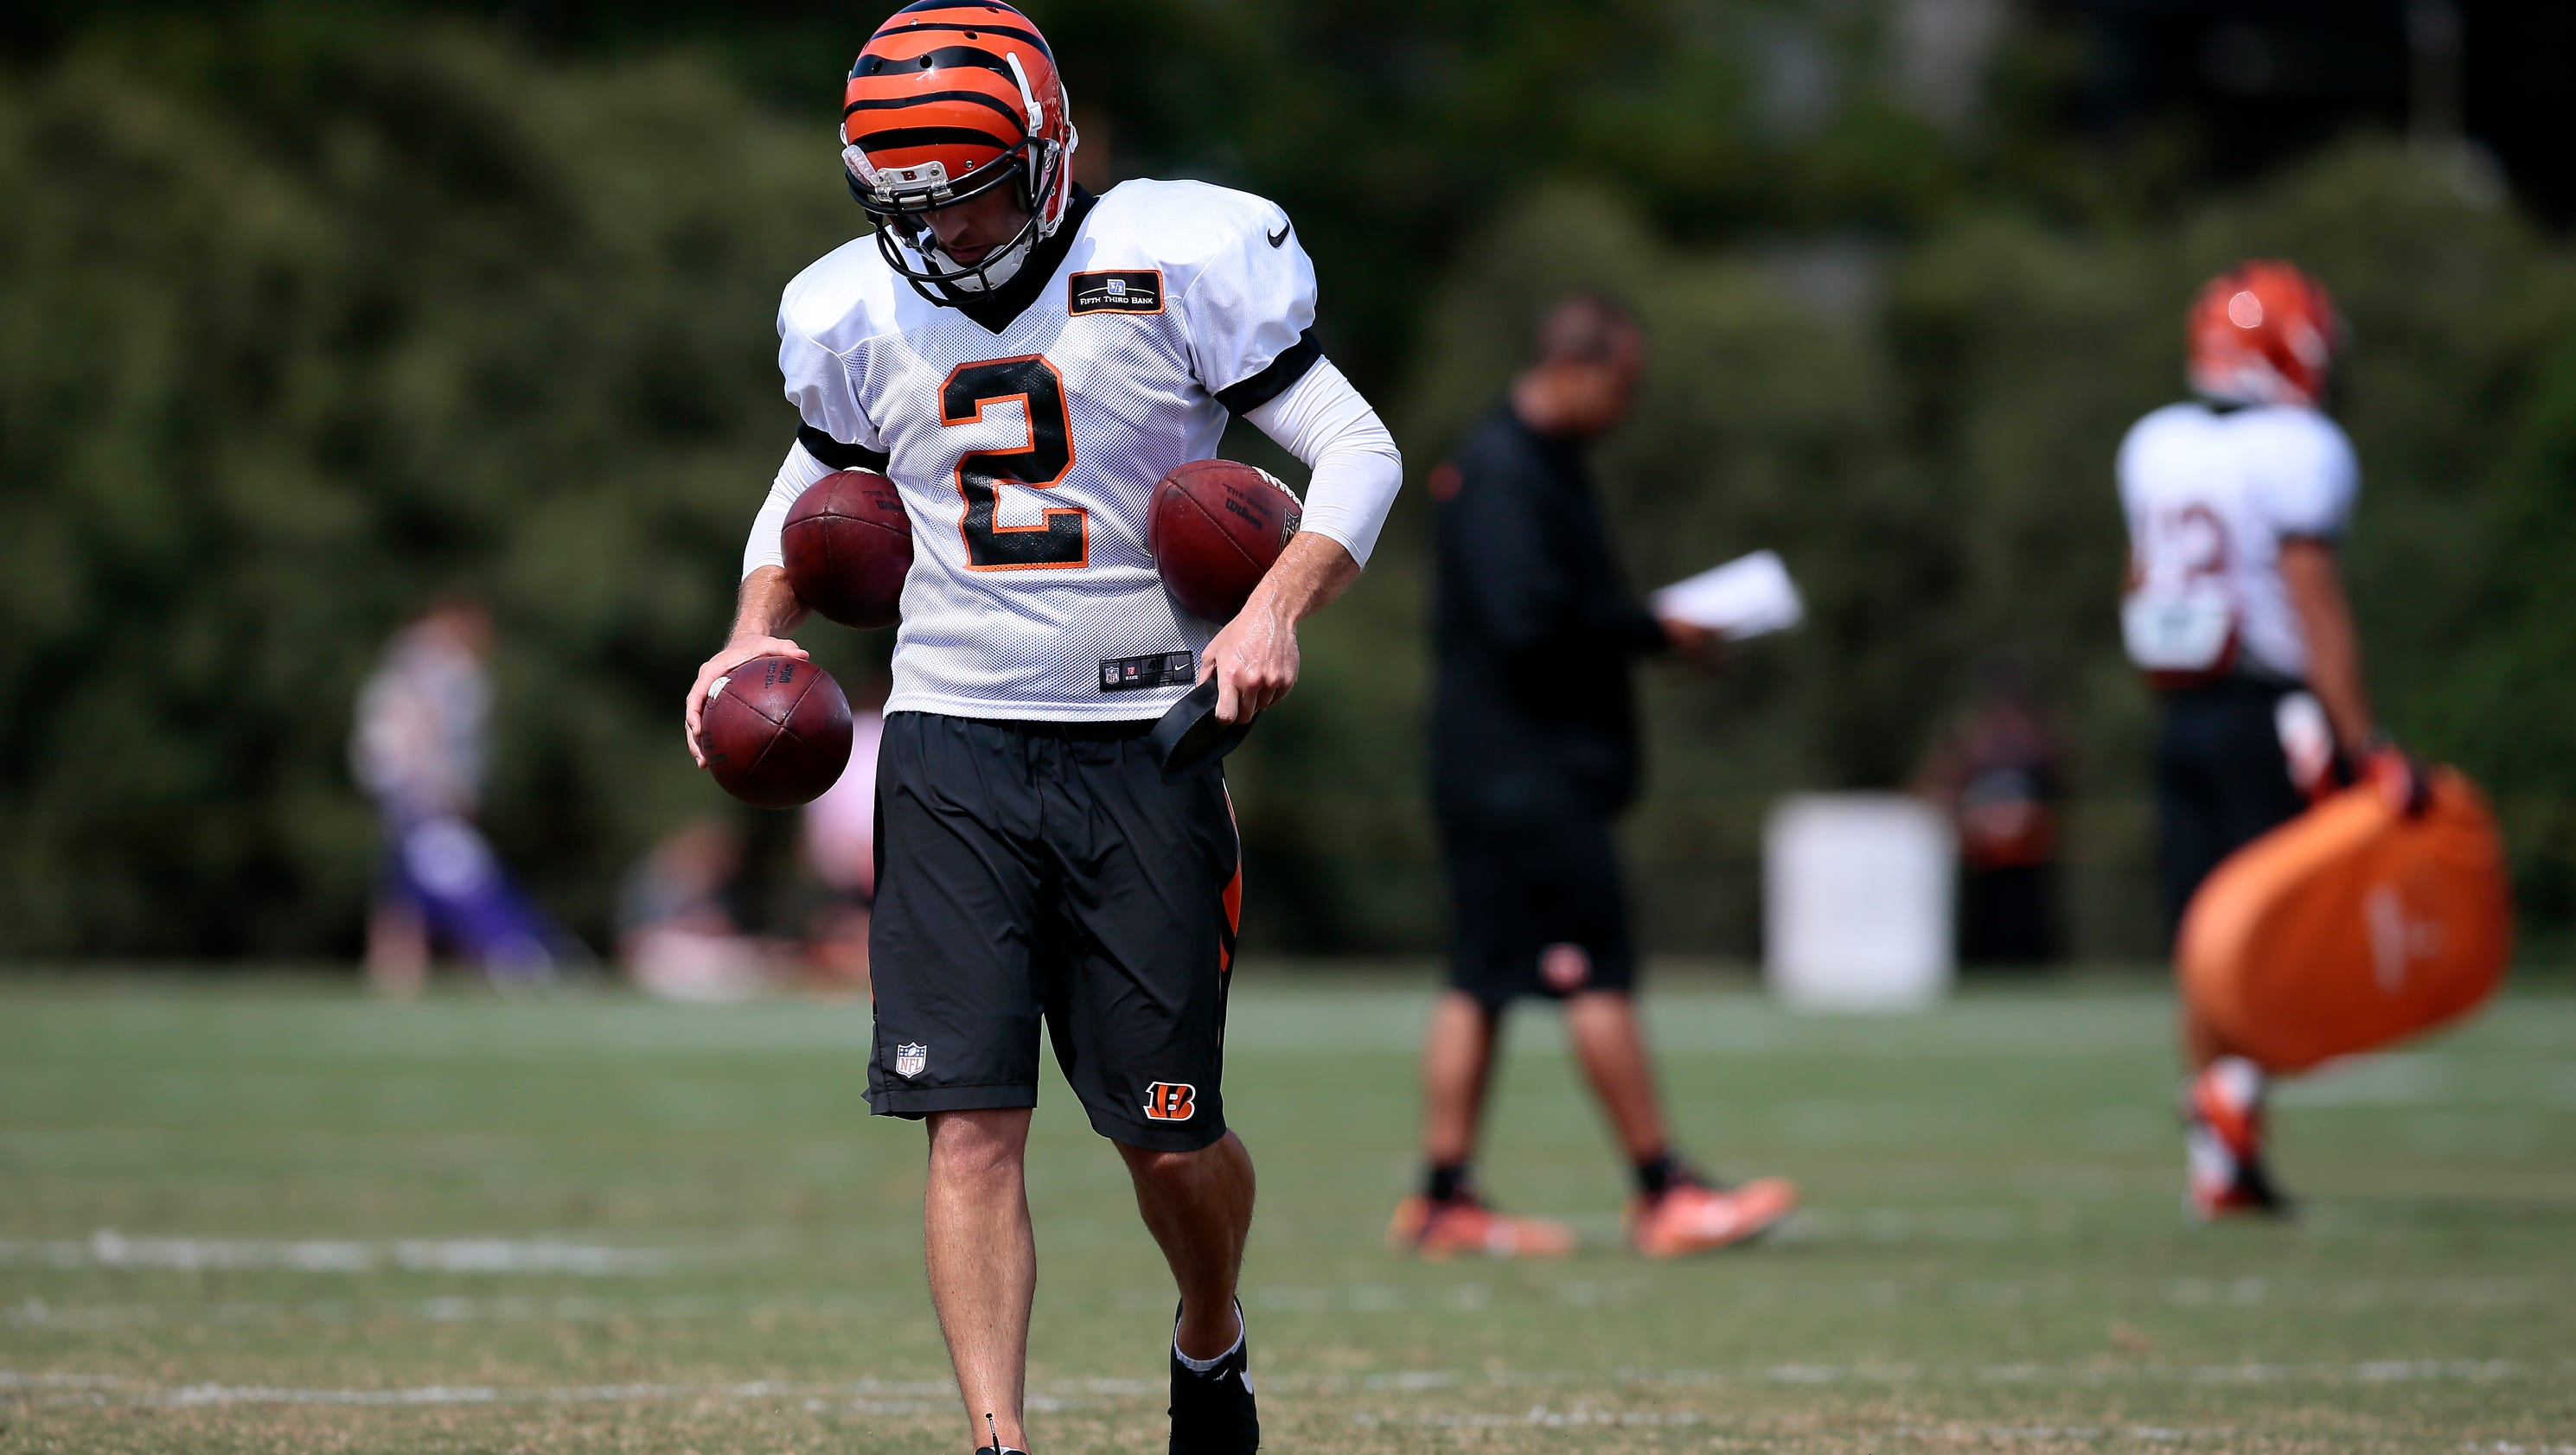 636062783363401581-080816bengalscamp-07